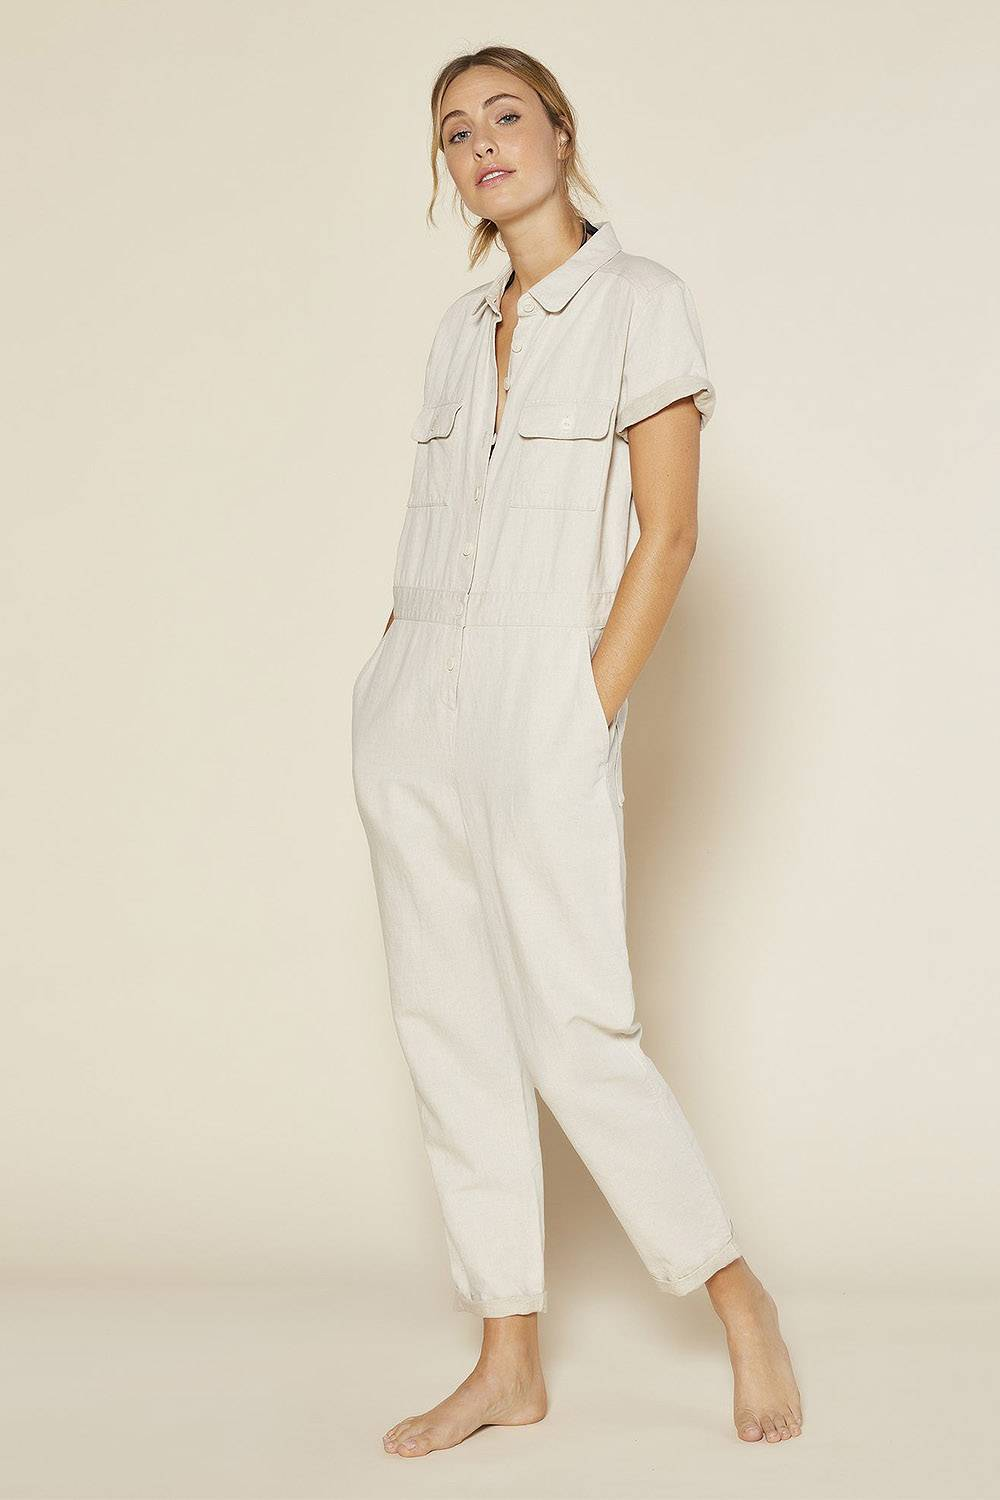 outerknown cheap timeless minimalist fashion brand